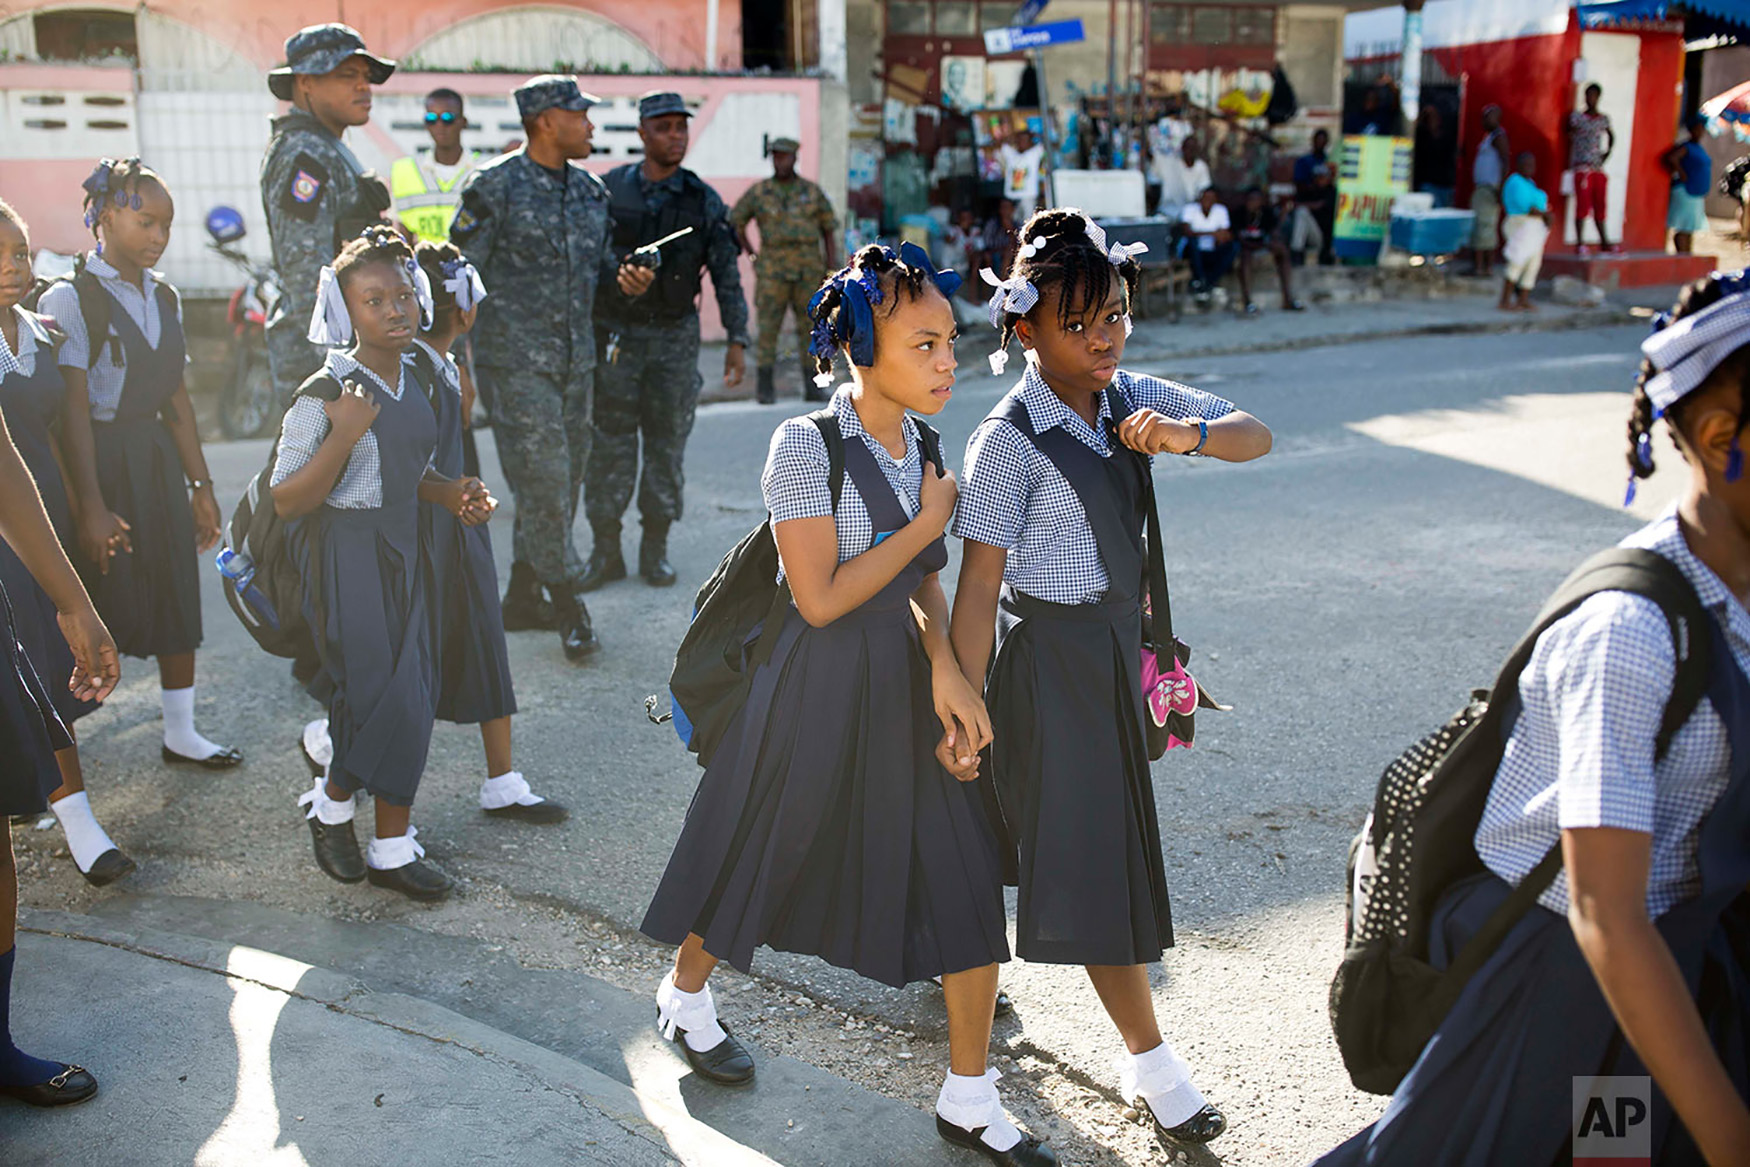 Students arrive hand in hand to the Brazilian National School before the start of a ceremony marking the first day back to class in Port-au-Prince, Haiti, Sept. 3, 2018. (AP Photo/Dieu Nalio Chery)